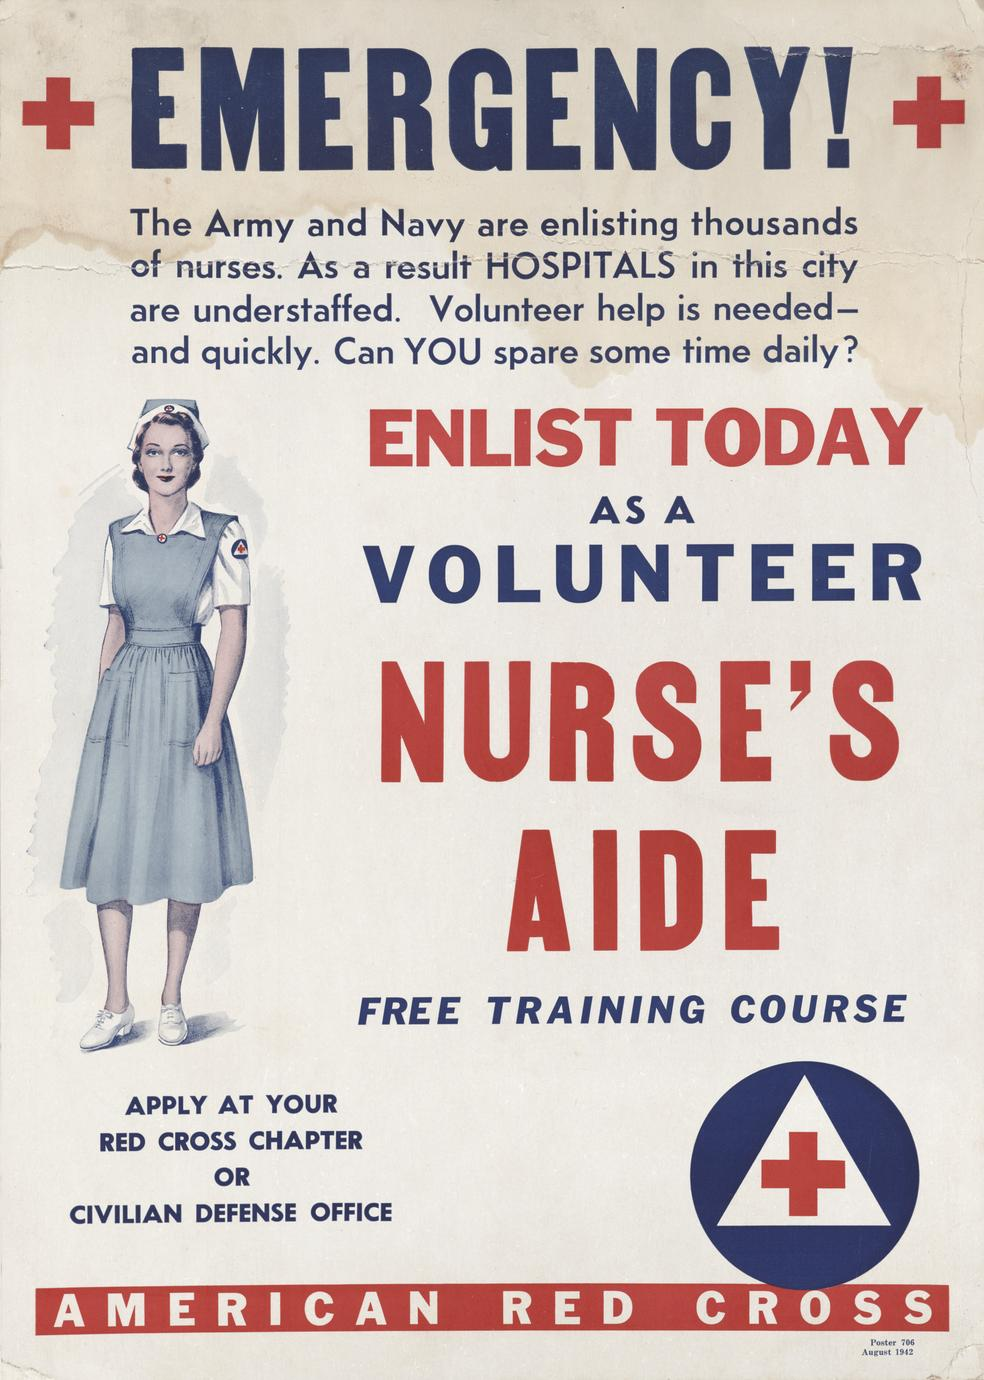 Red Cross volunteer nurses aide poster